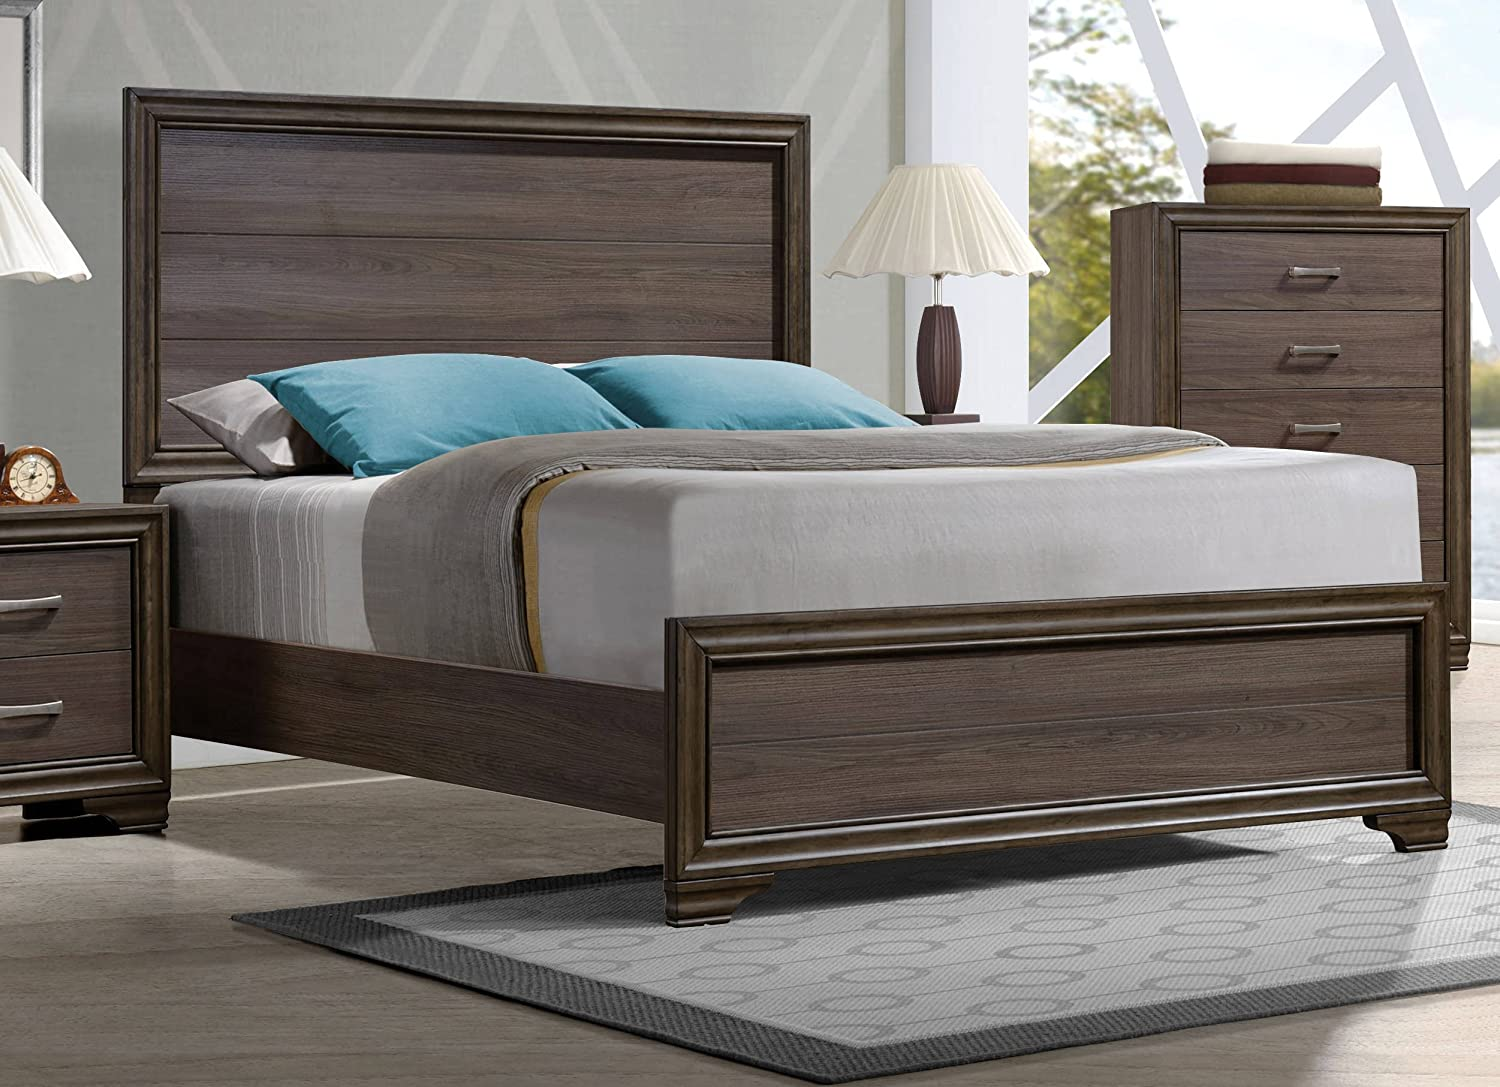 ACME Furniture Cyrille 25840Q Wooden Queen Bed - Walnut